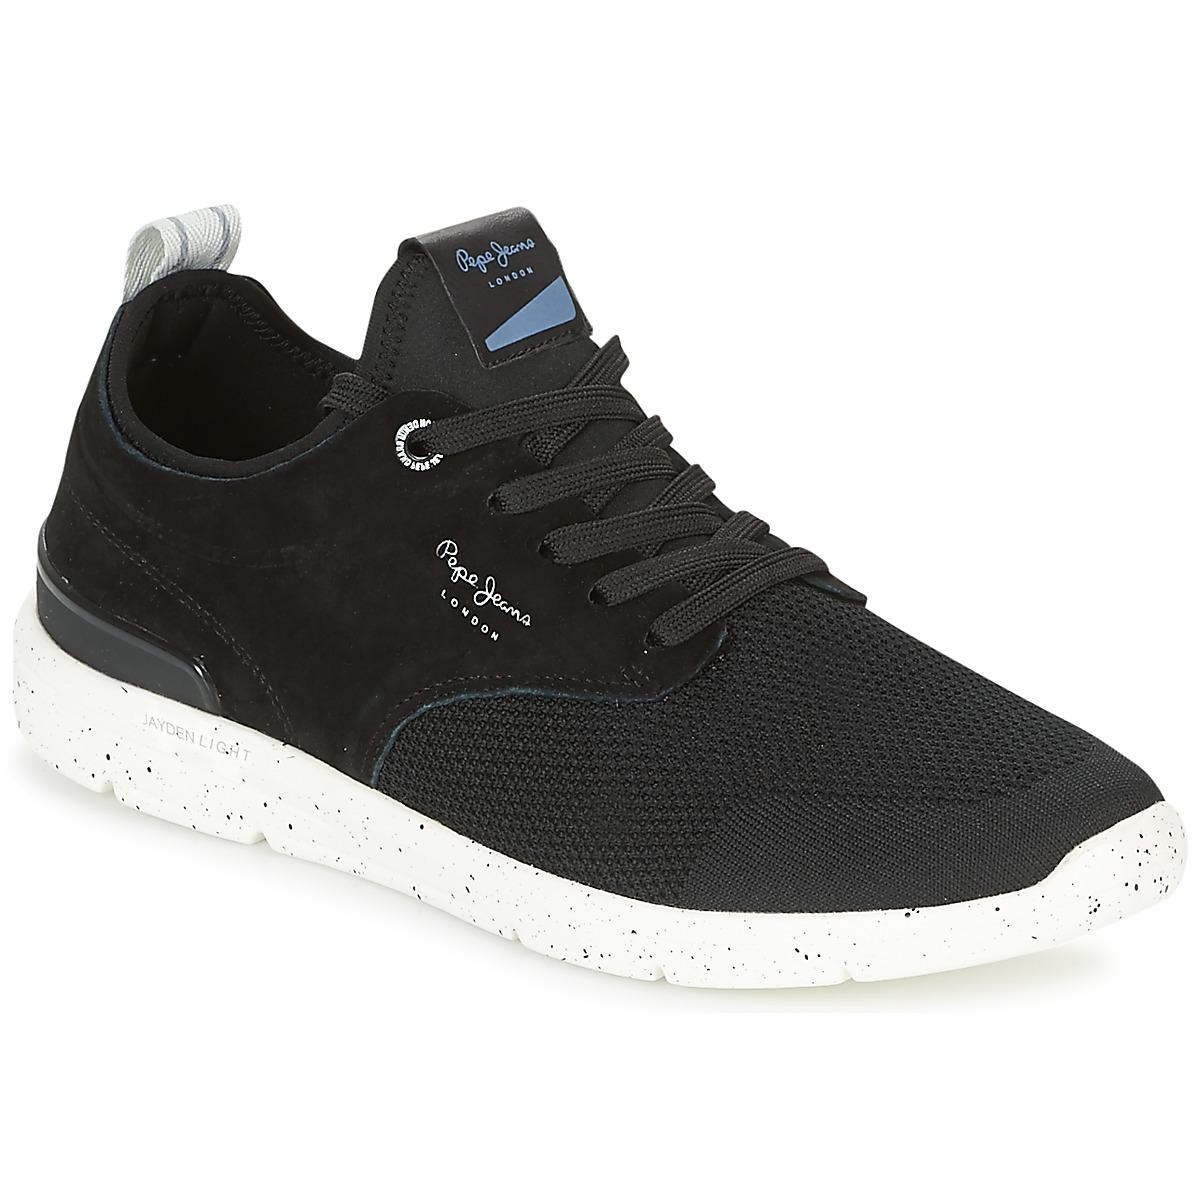 c33d9bb6e19 Pepe Jeans Jayden Tech Men s Shoes (trainers) In Black in Black for ...